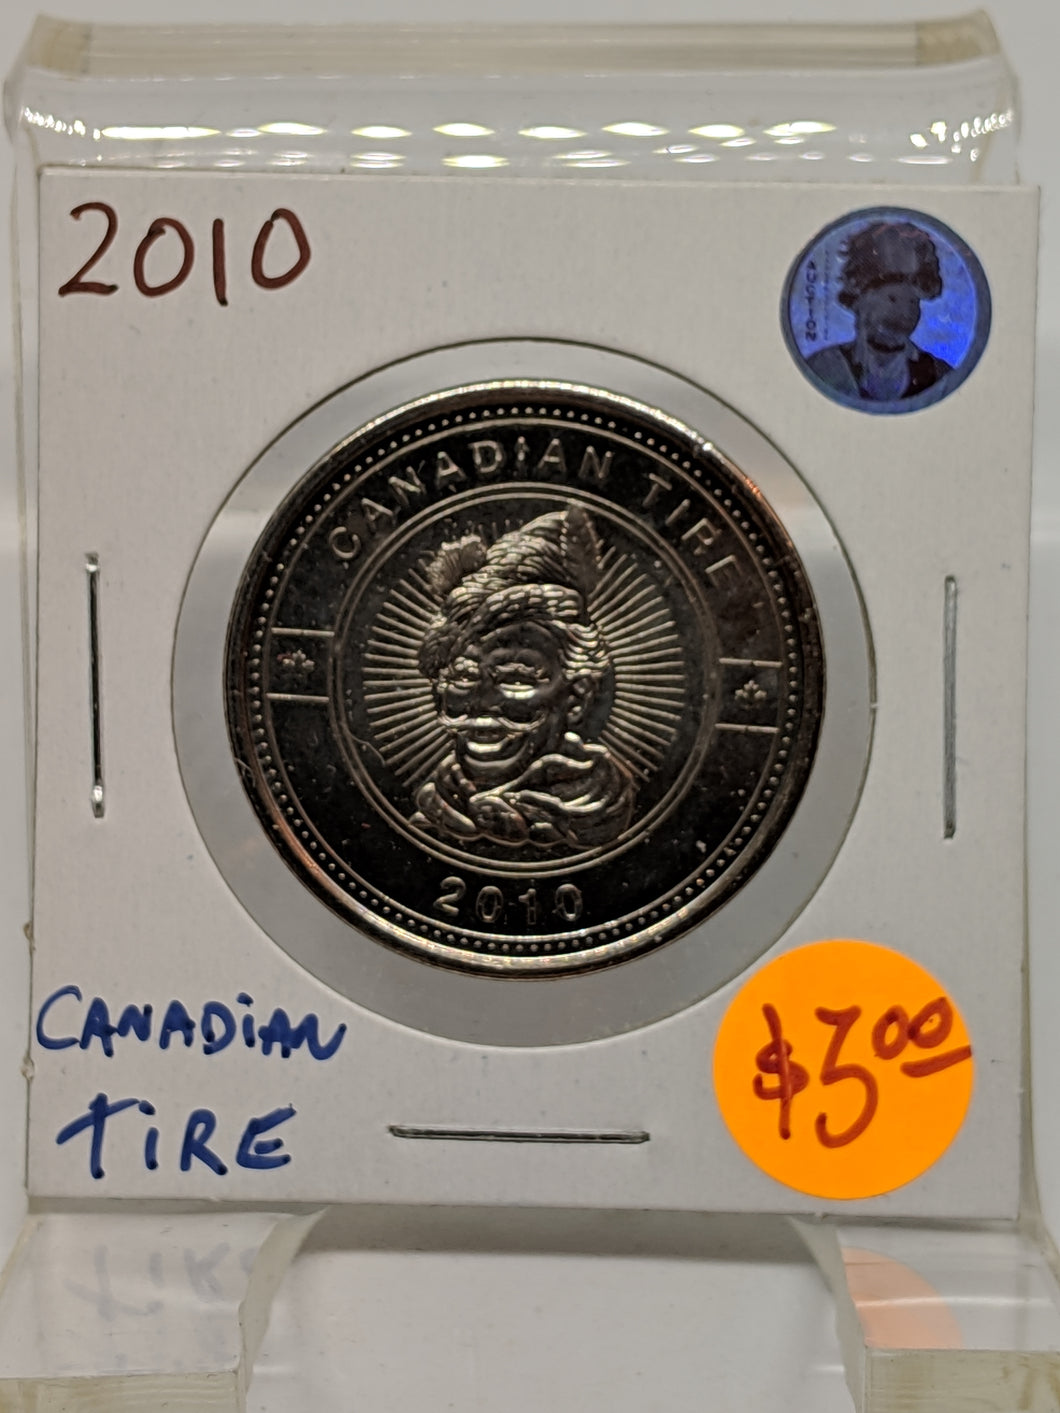 2010 Canadian Tire Token 1 Dollar Limited Edition